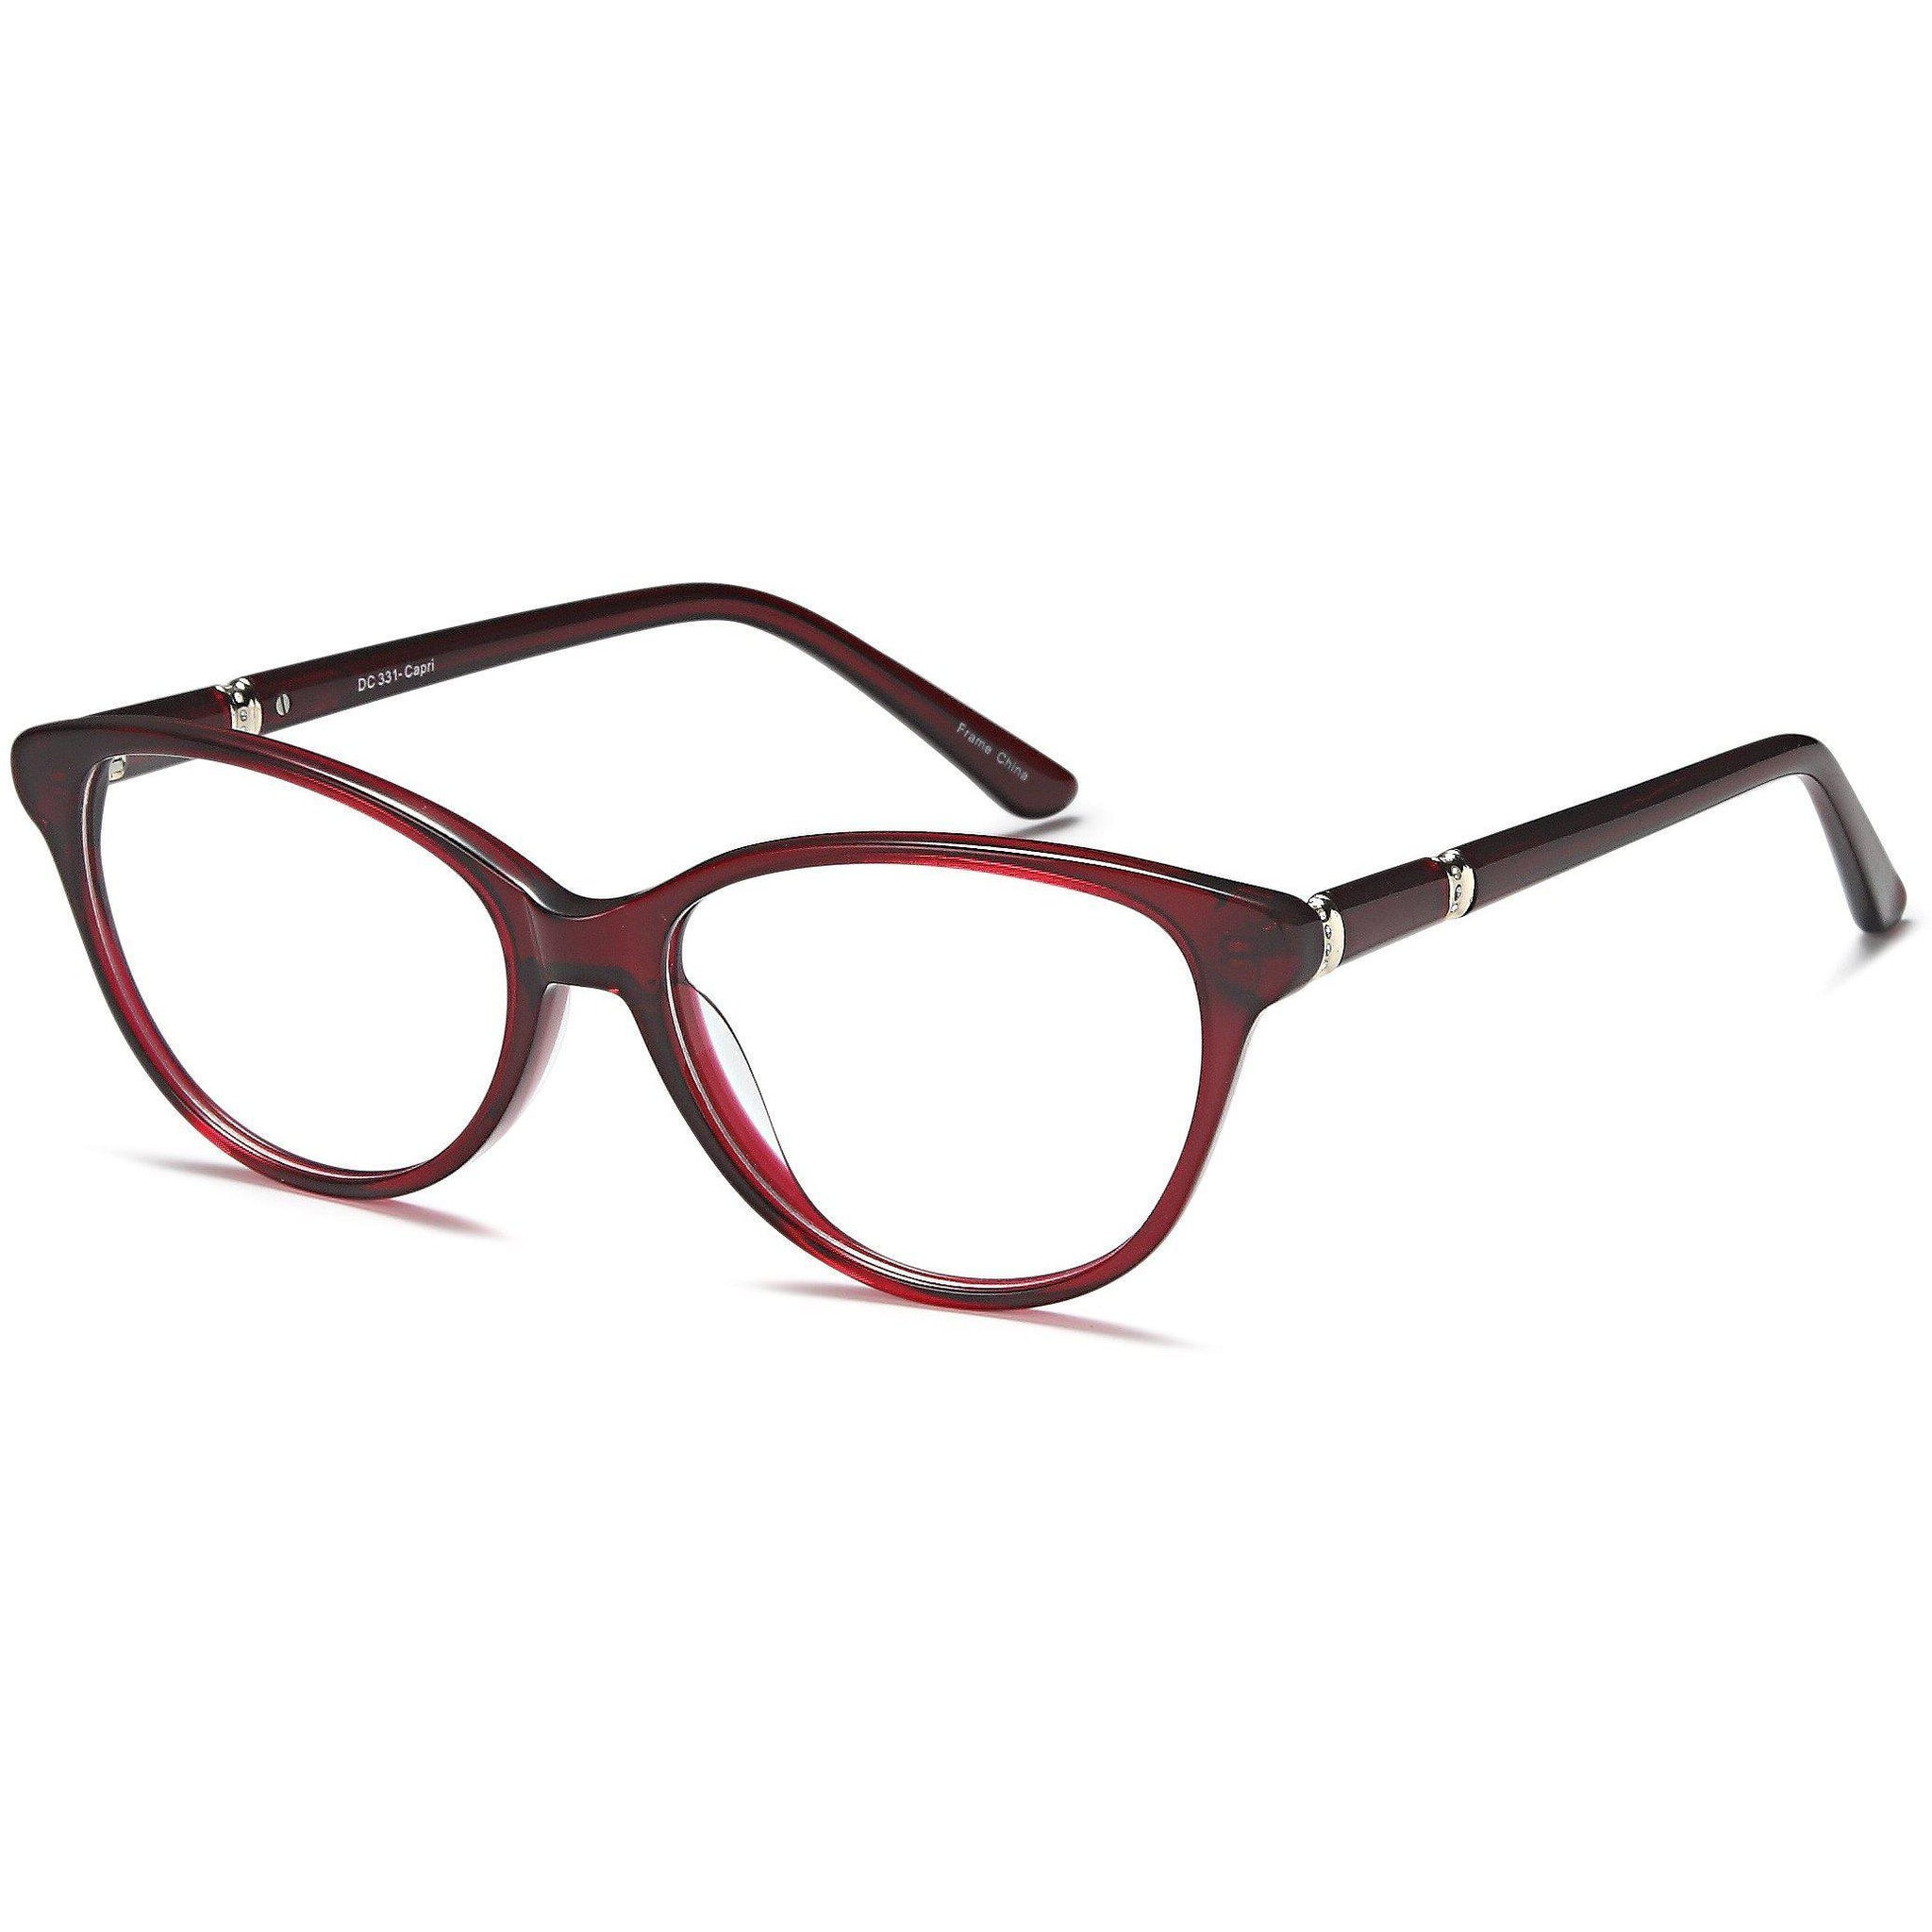 Di Caprio Prescription Glasses DC 331 Eyeglasses Frame - timetoshade